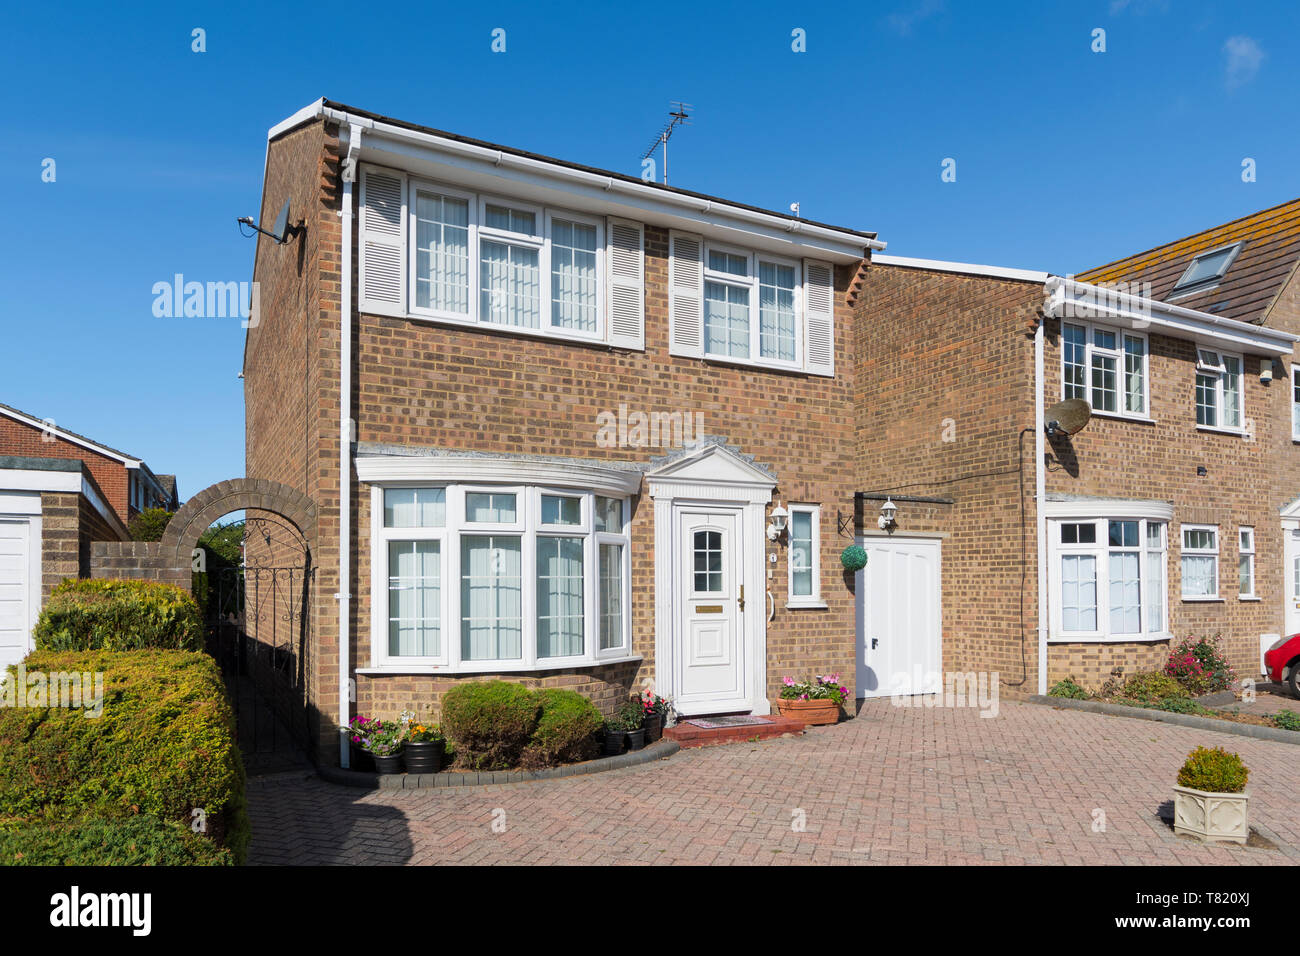 Small modern brick detached house with garage separating it from a neighbouring house in West Sussex, England, UK. - Stock Image